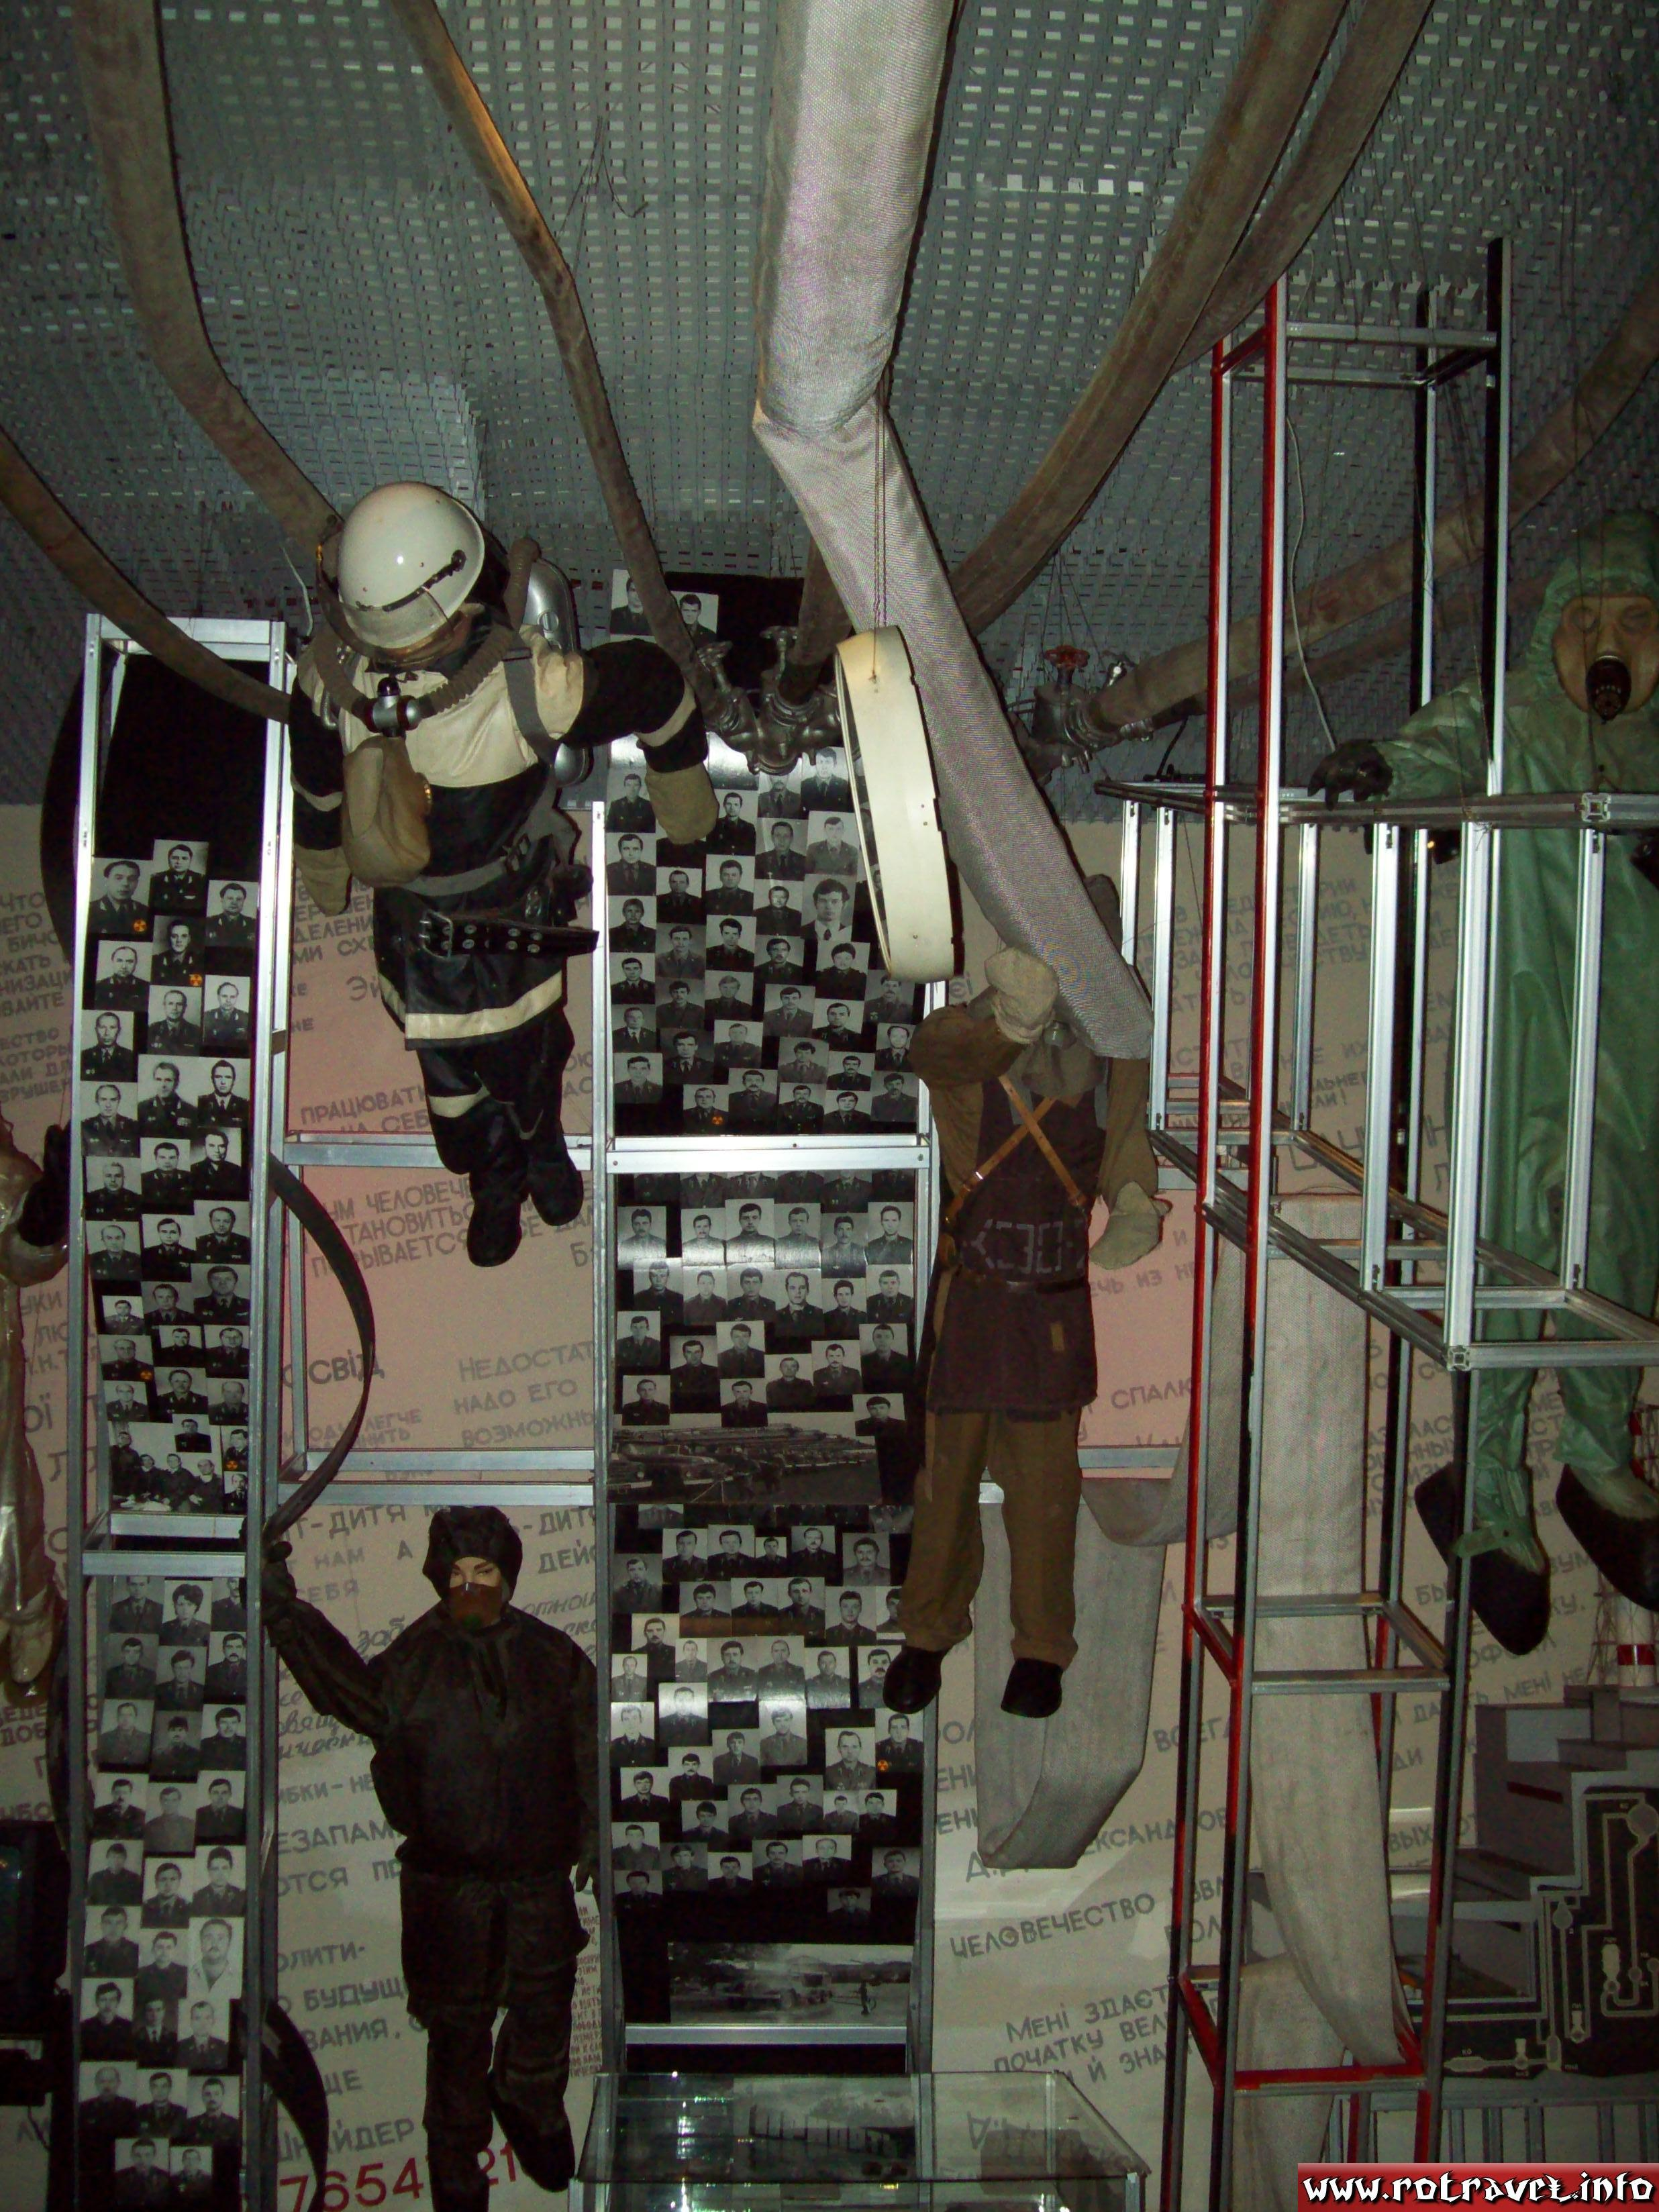 Costumes of Liquidators, approximately 800,000 people who were in charge of the removal of the consequences of the April 26, 1986 Chernobyl disaster on the site of the event.